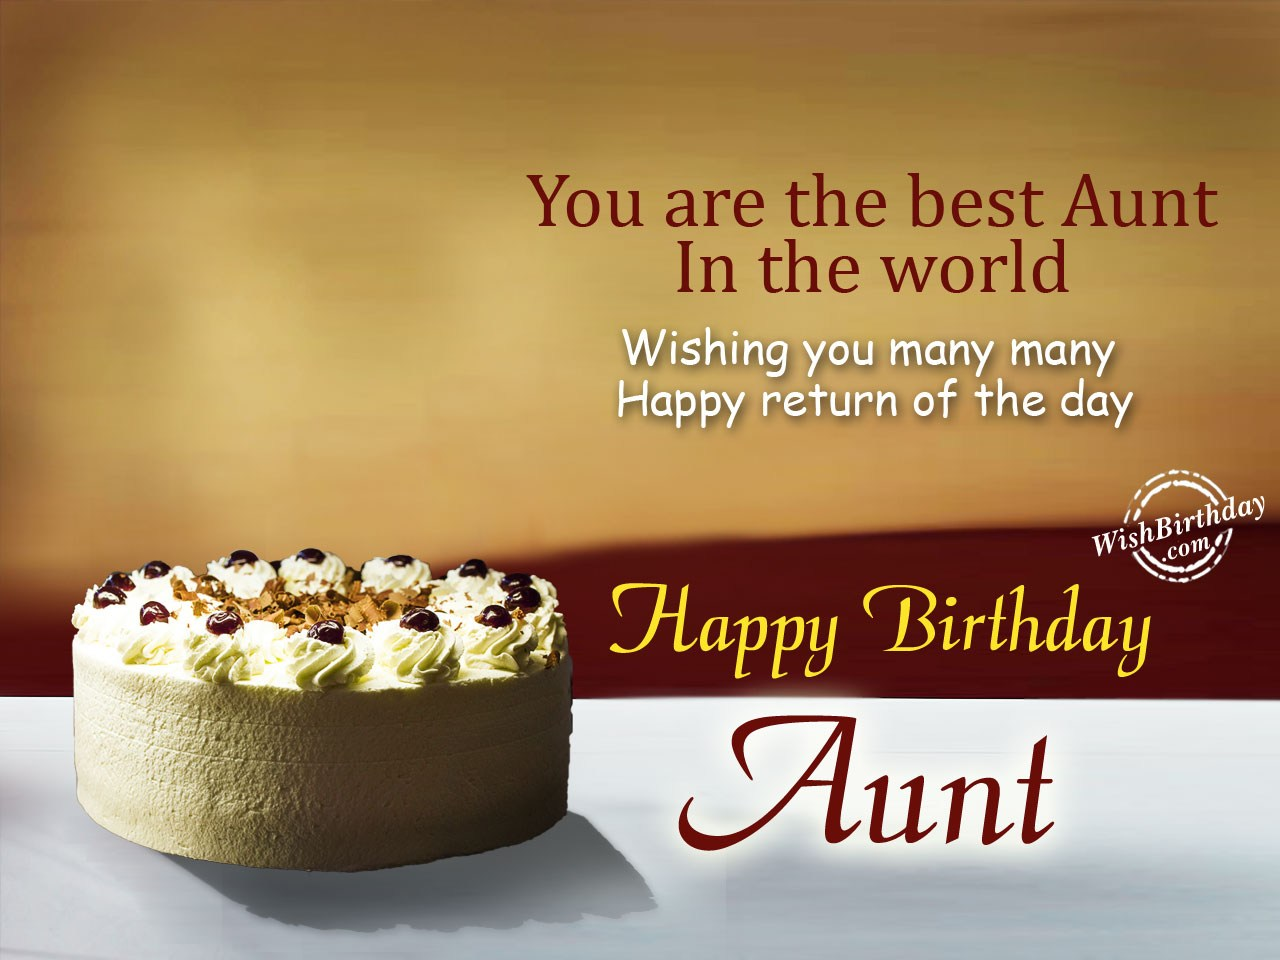 birthday wishes message to aunty ; Birthday-Messages-for-Aunt-image-5